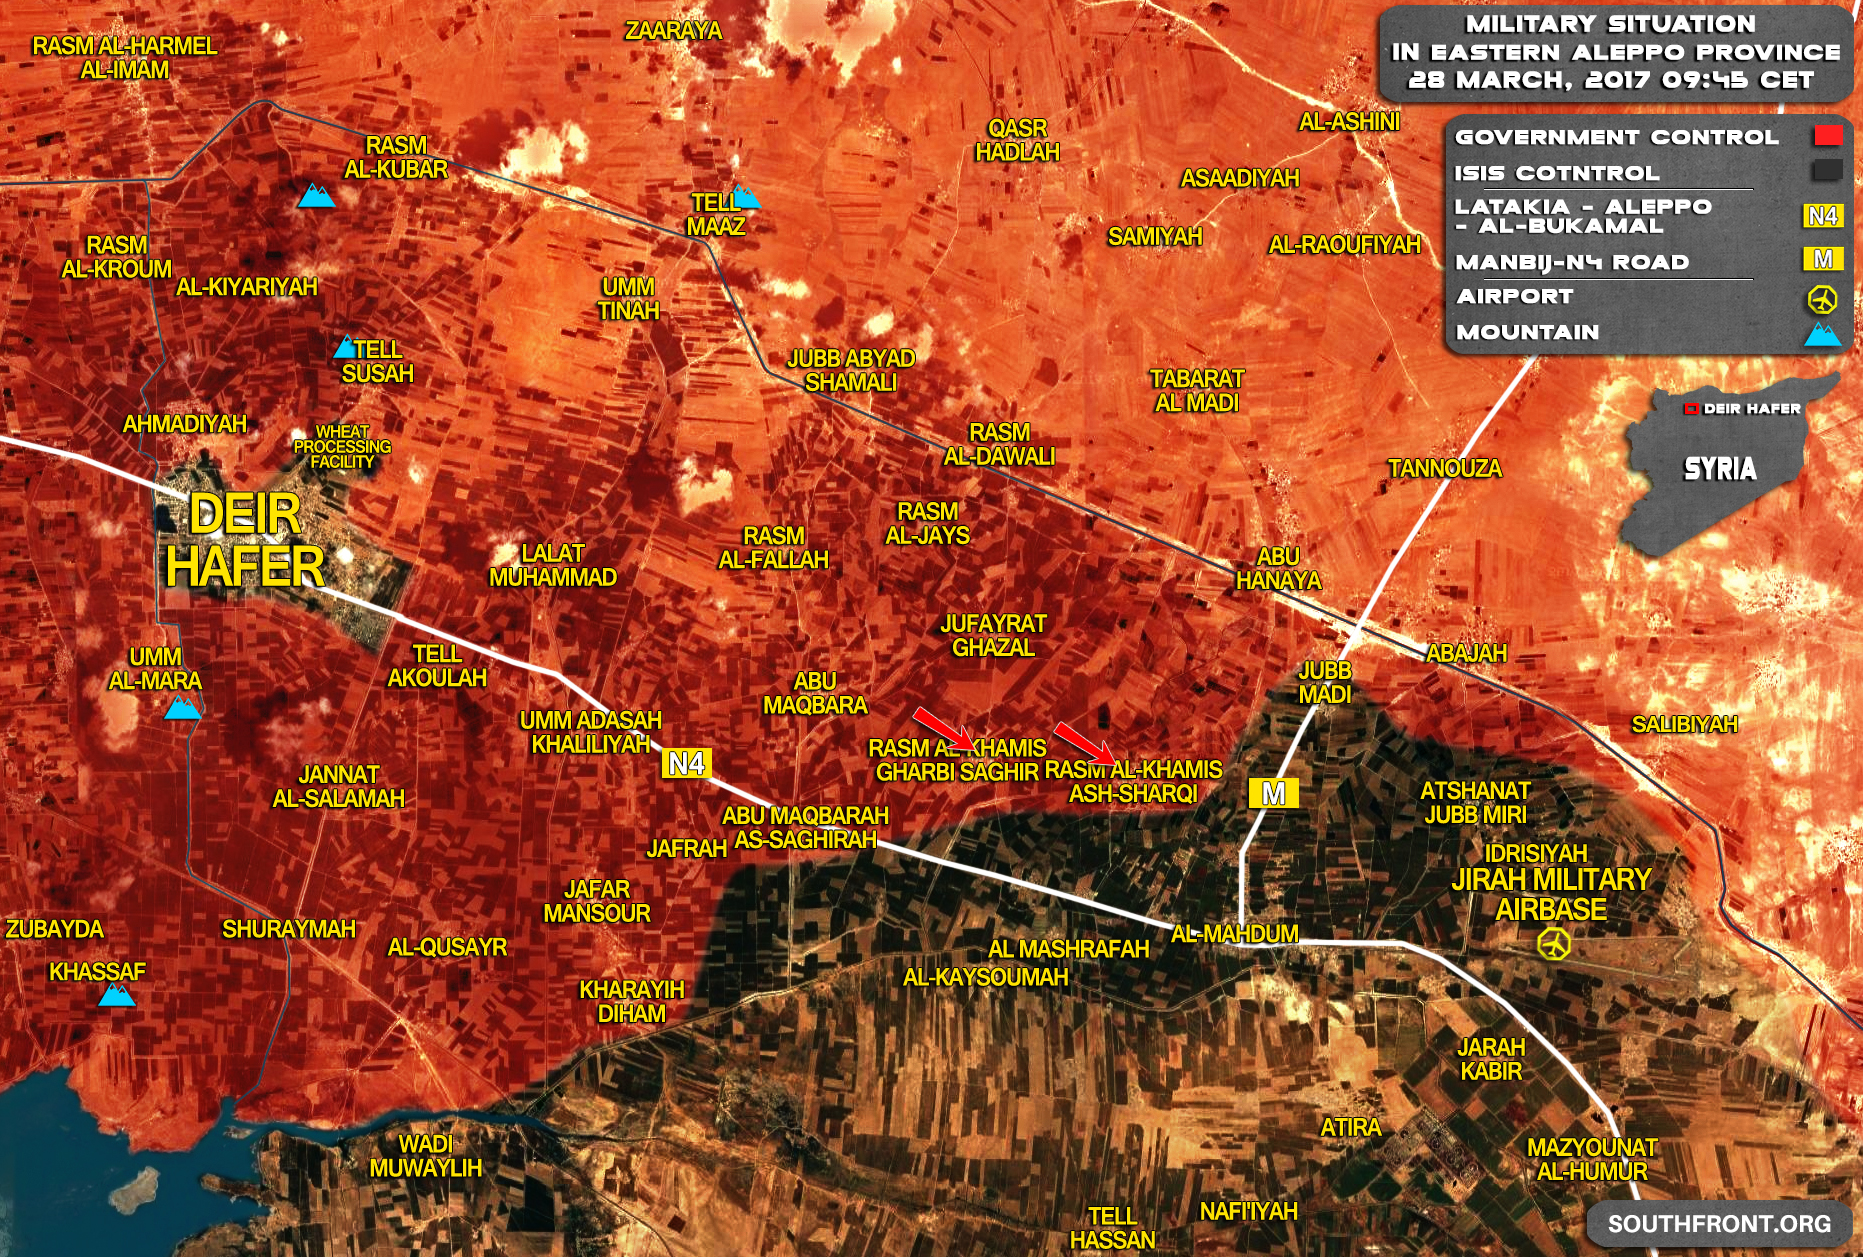 Syrian Army Made More Gains On Its Way To ISIS-held Jirah Airbase